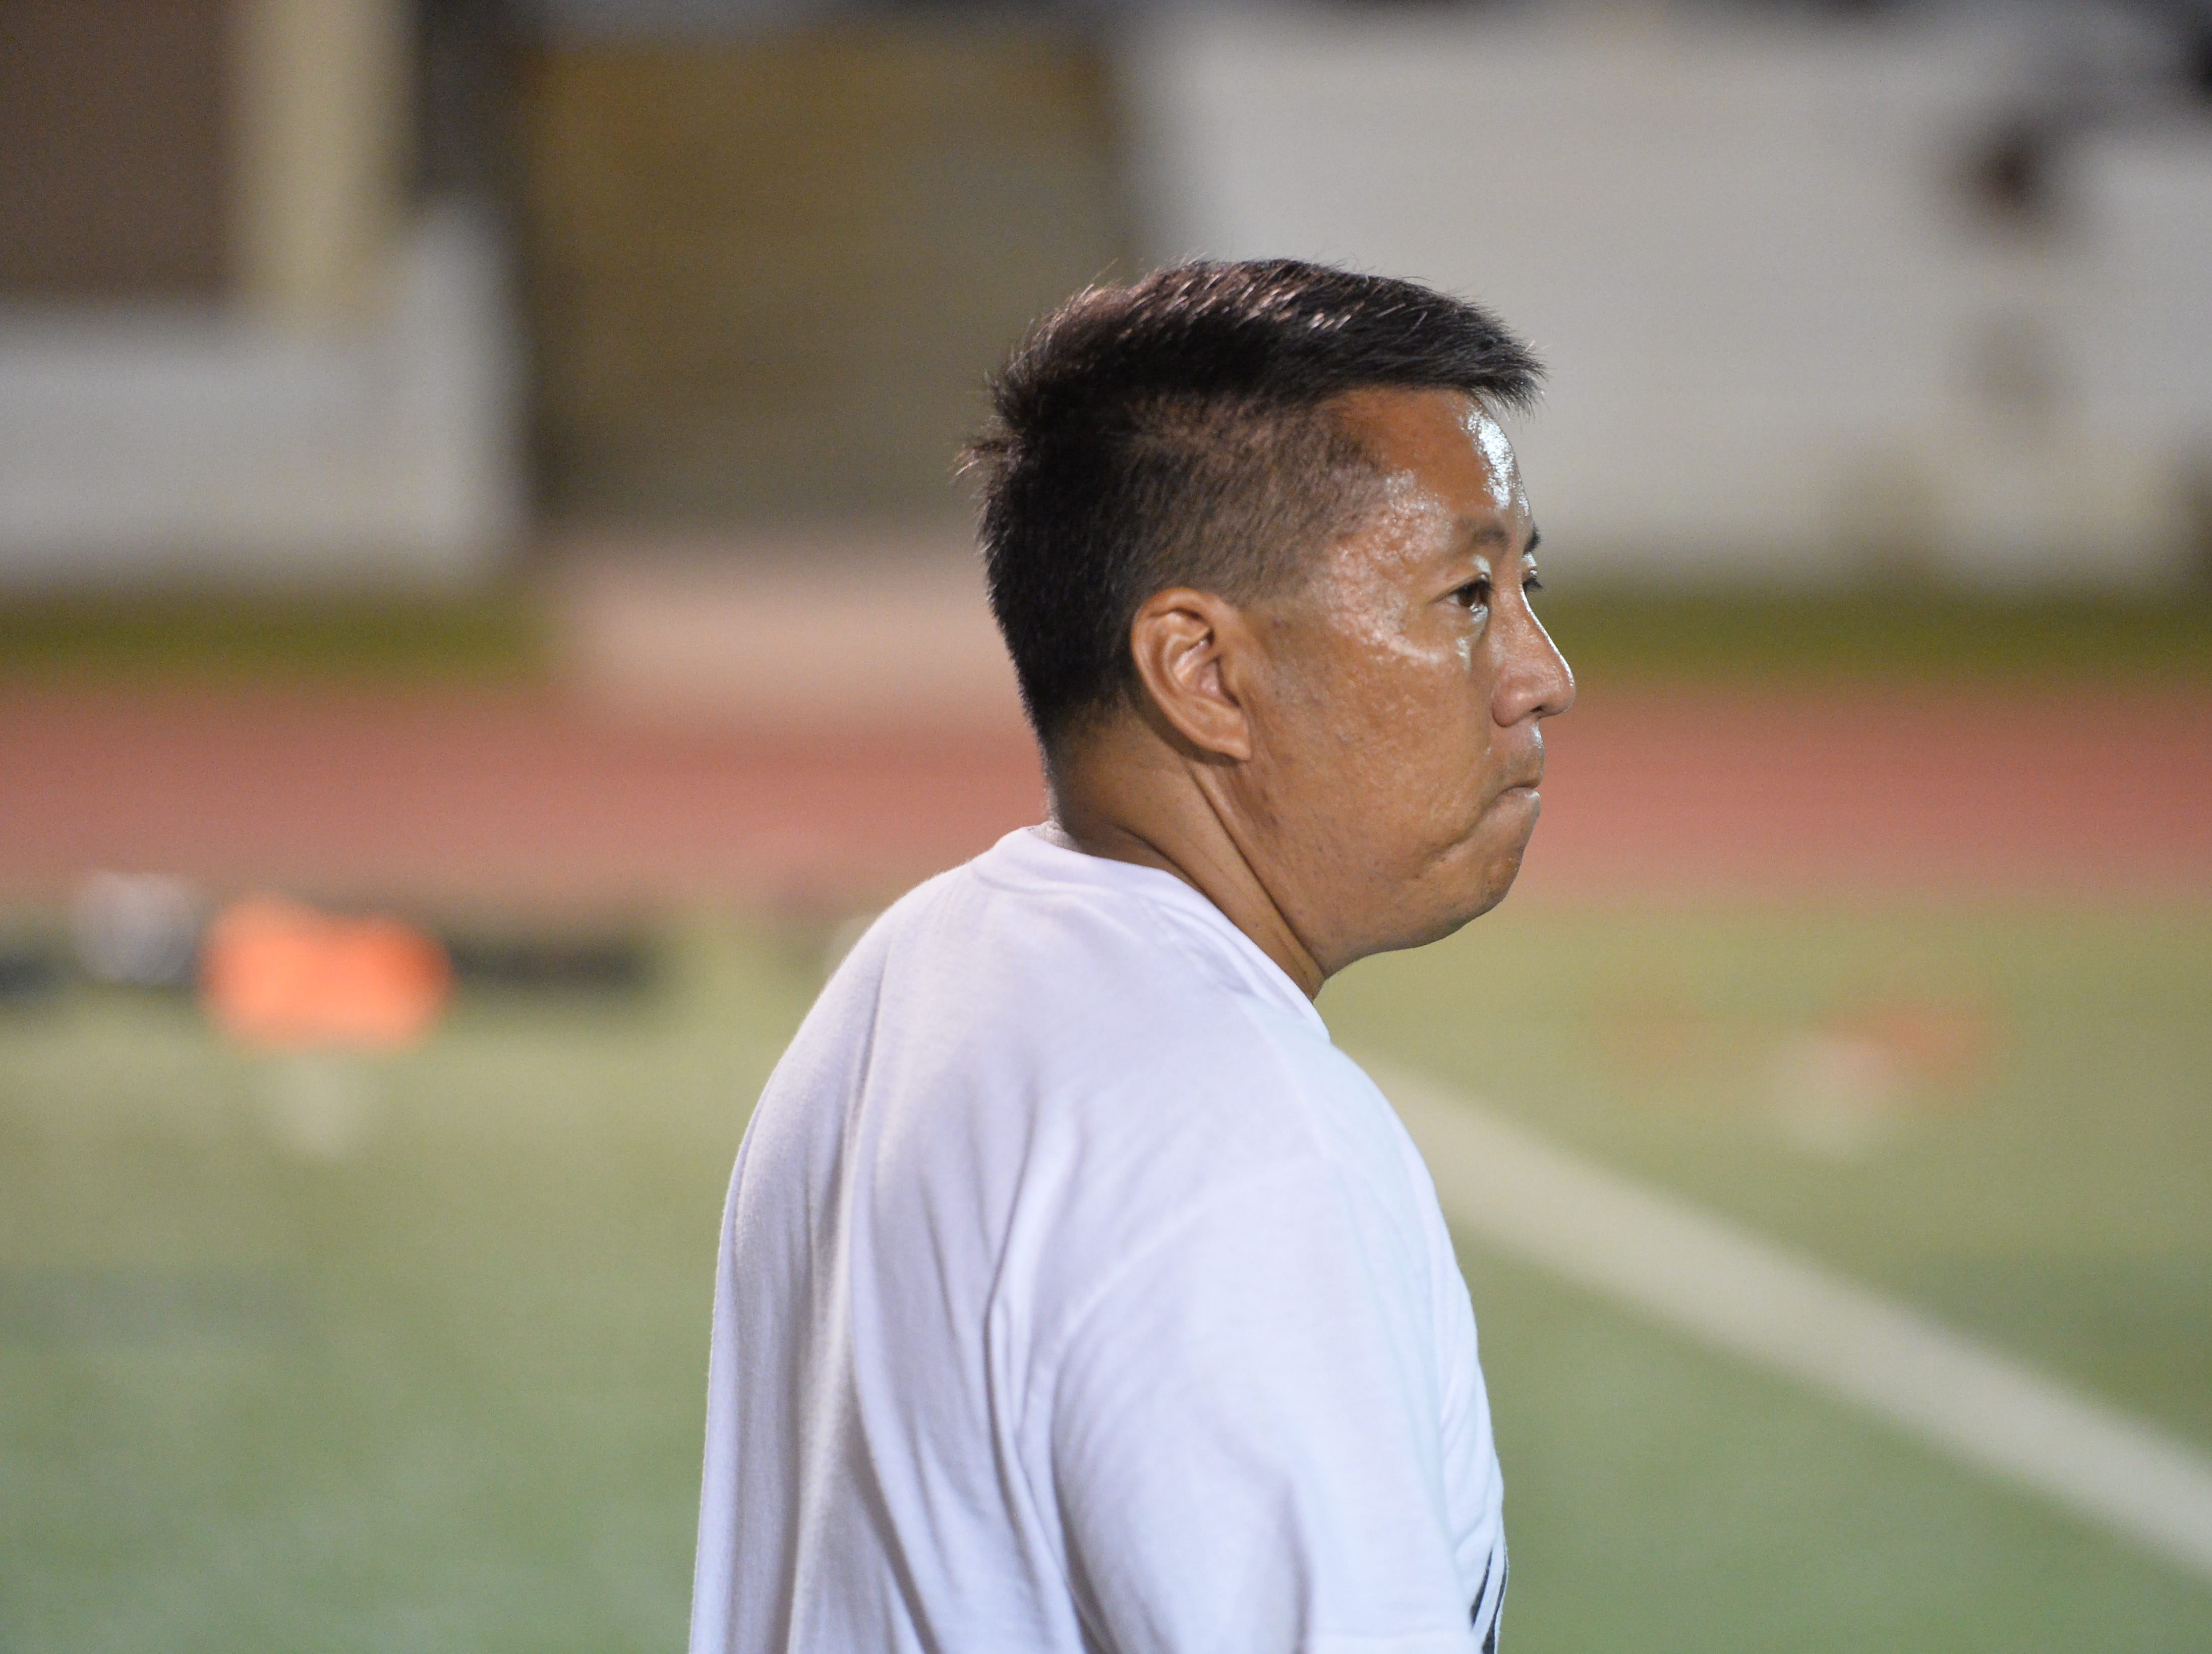 Strenth and conditioning coach Chad Ikei, one of the volunteer coaches of the 2nd Guam Football College Showcase and Combine, was once an international weightlifting champion for Team USA.